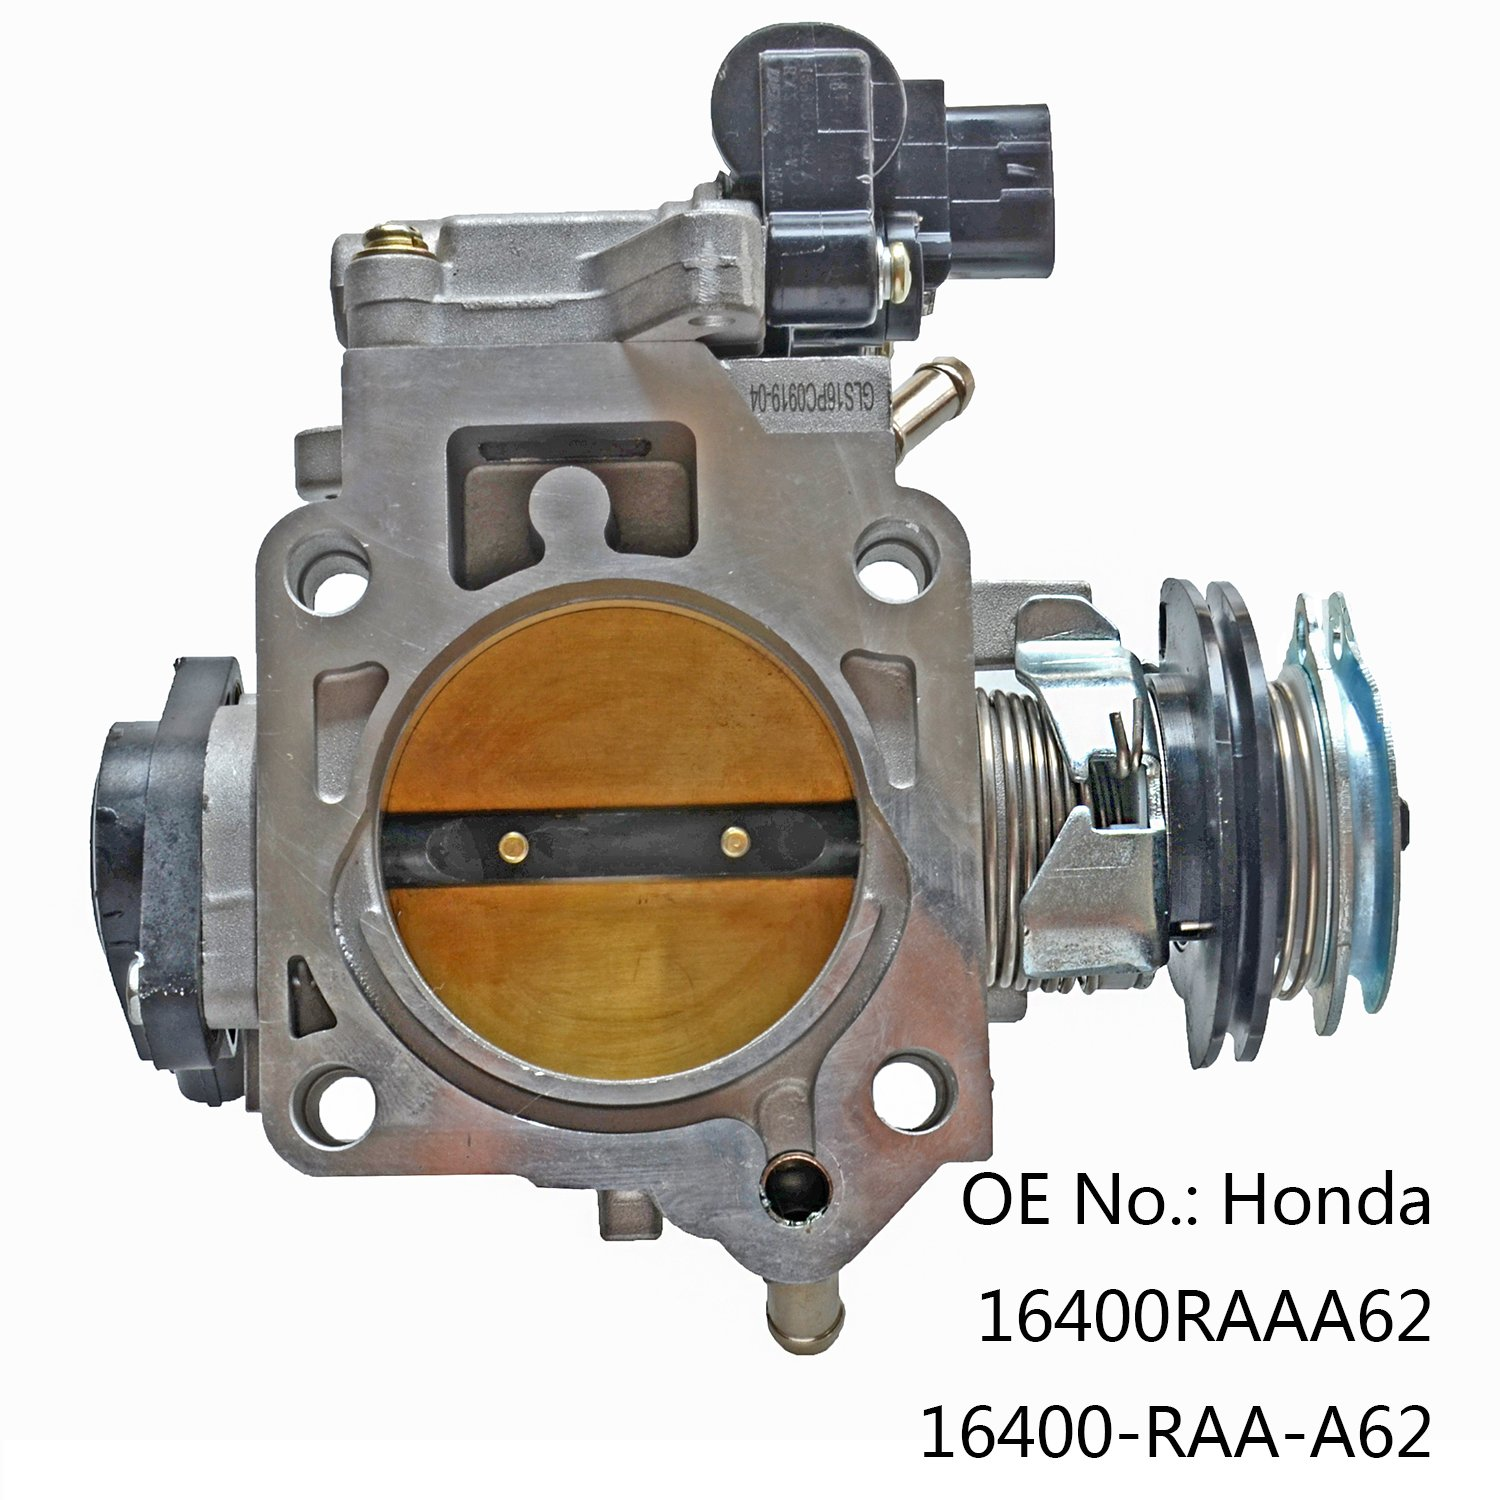 Throttle Body Fit For 2003-2005 Honda Accord DX LX EX 2.4L 16400-RAA-A62 16400RAAA62 GELUOXI